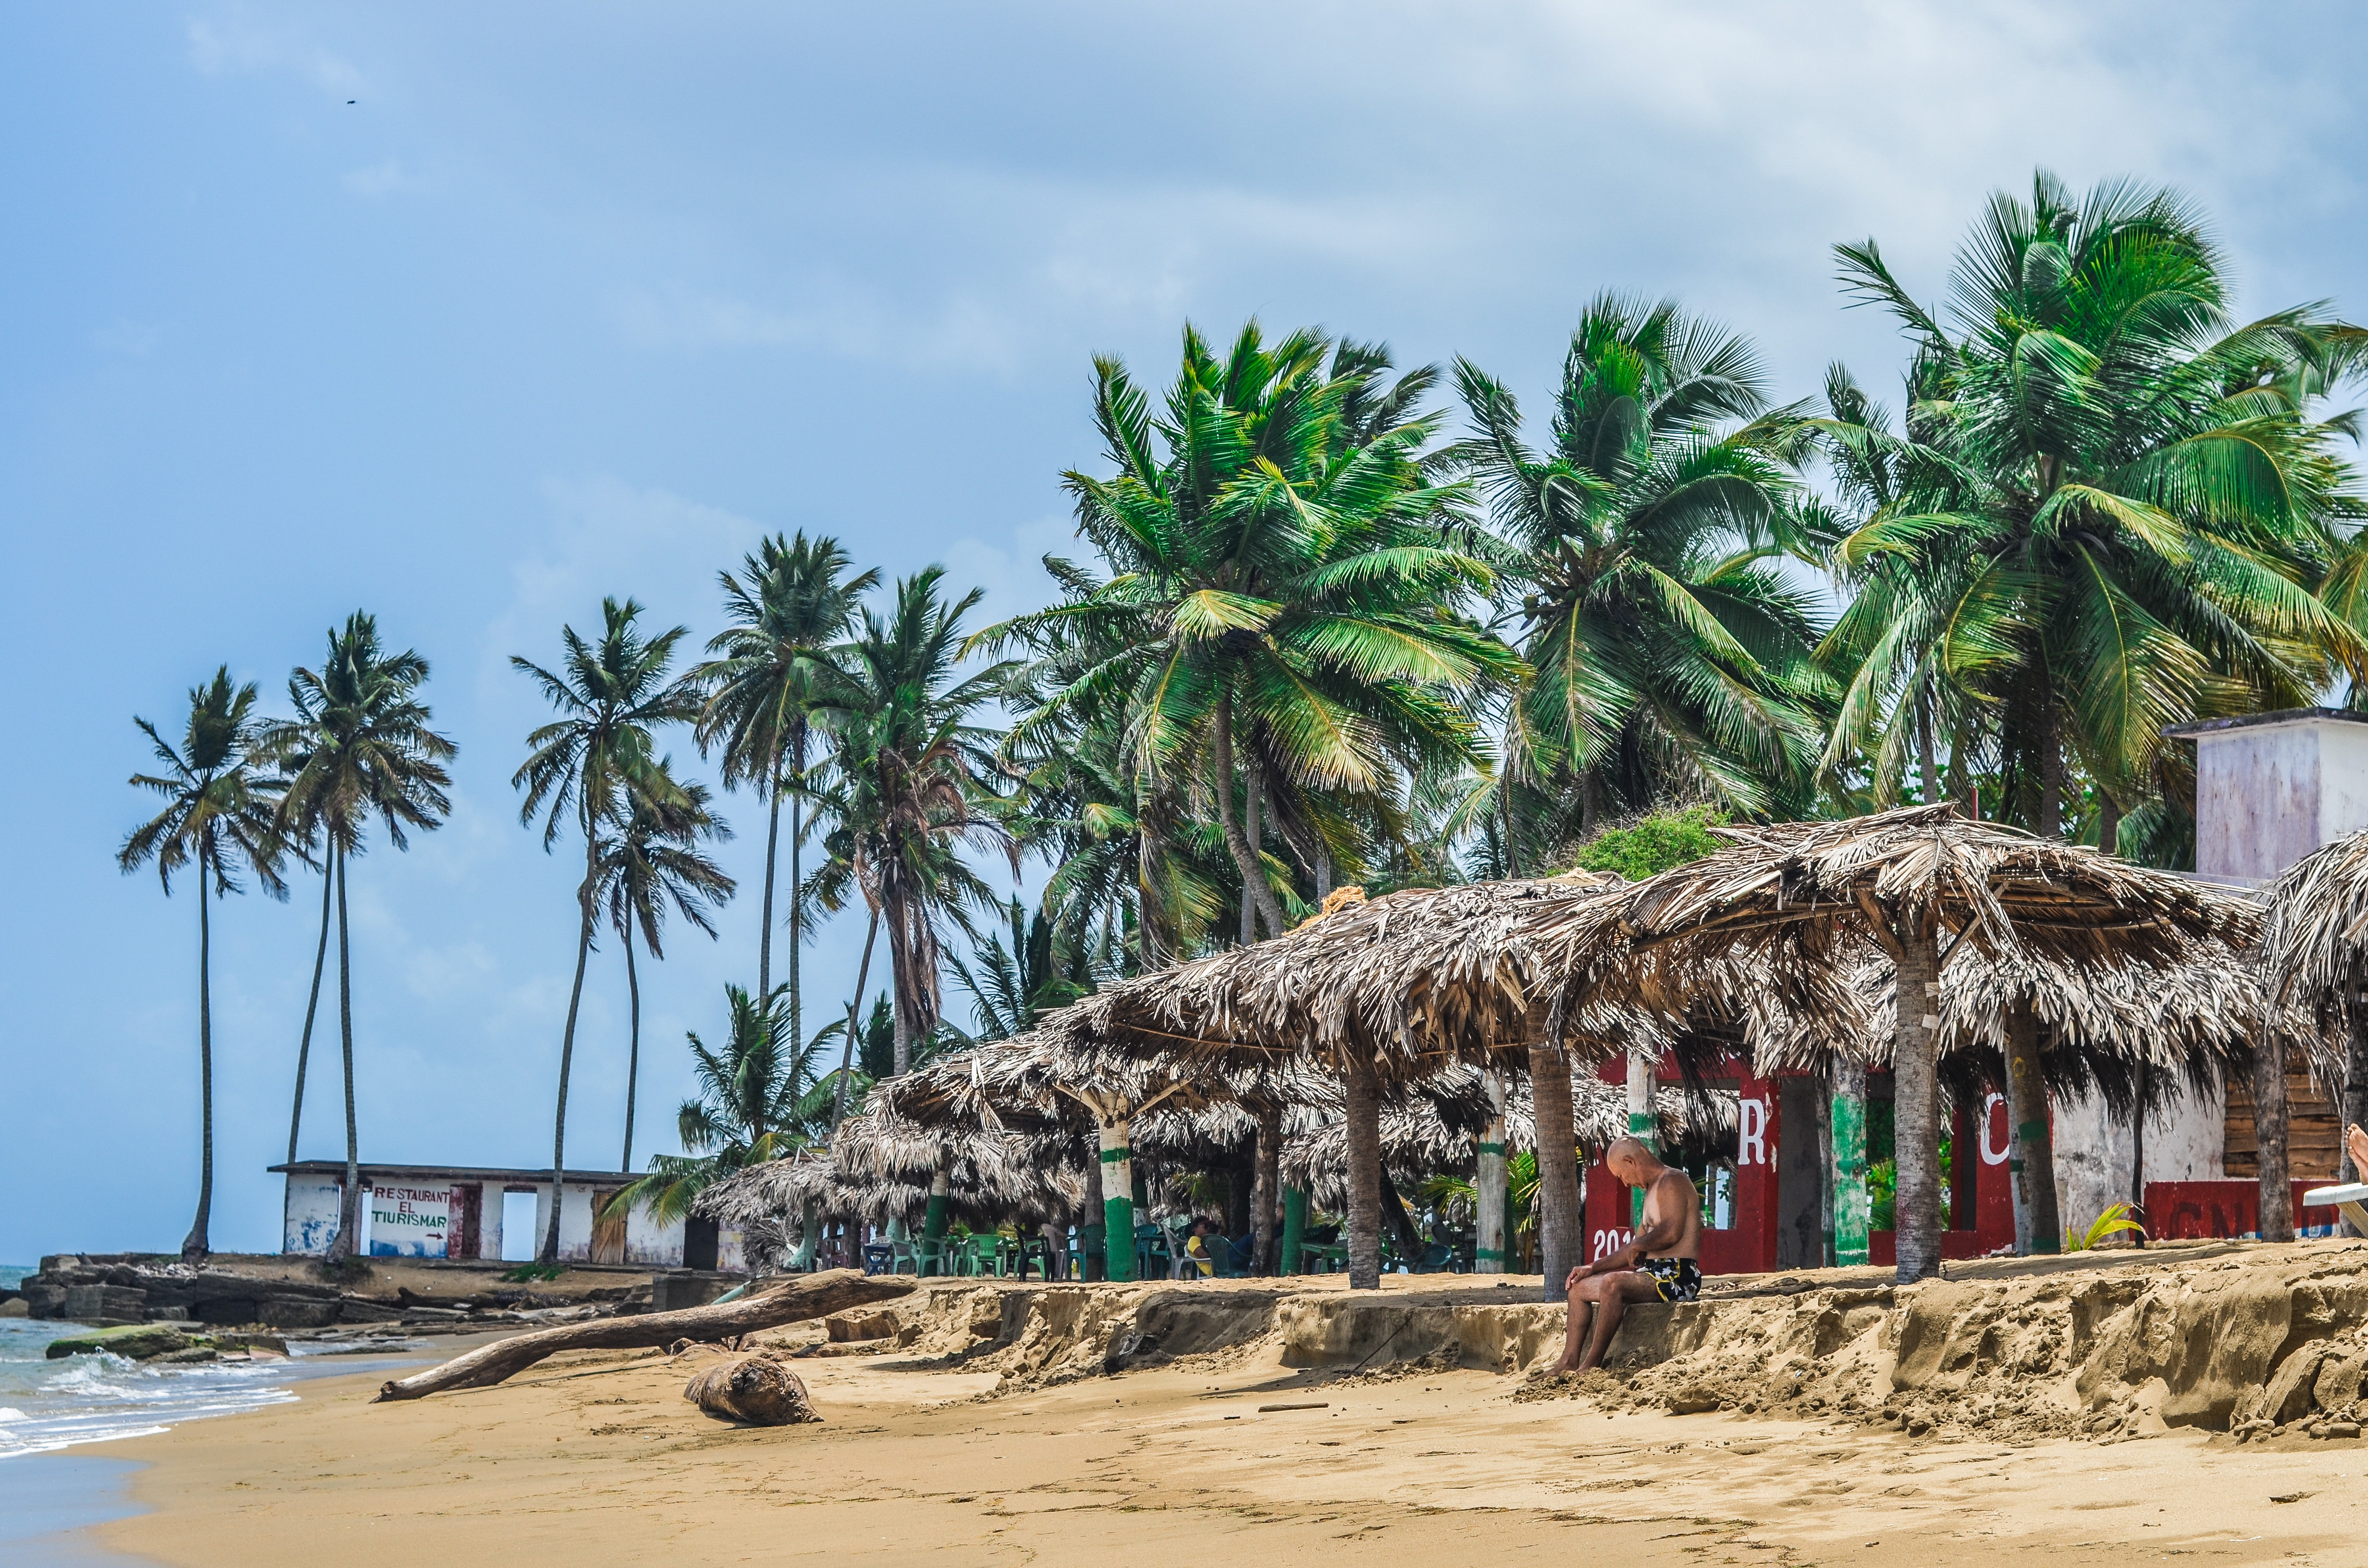 A lone man sitting on the beach under a thatched roof